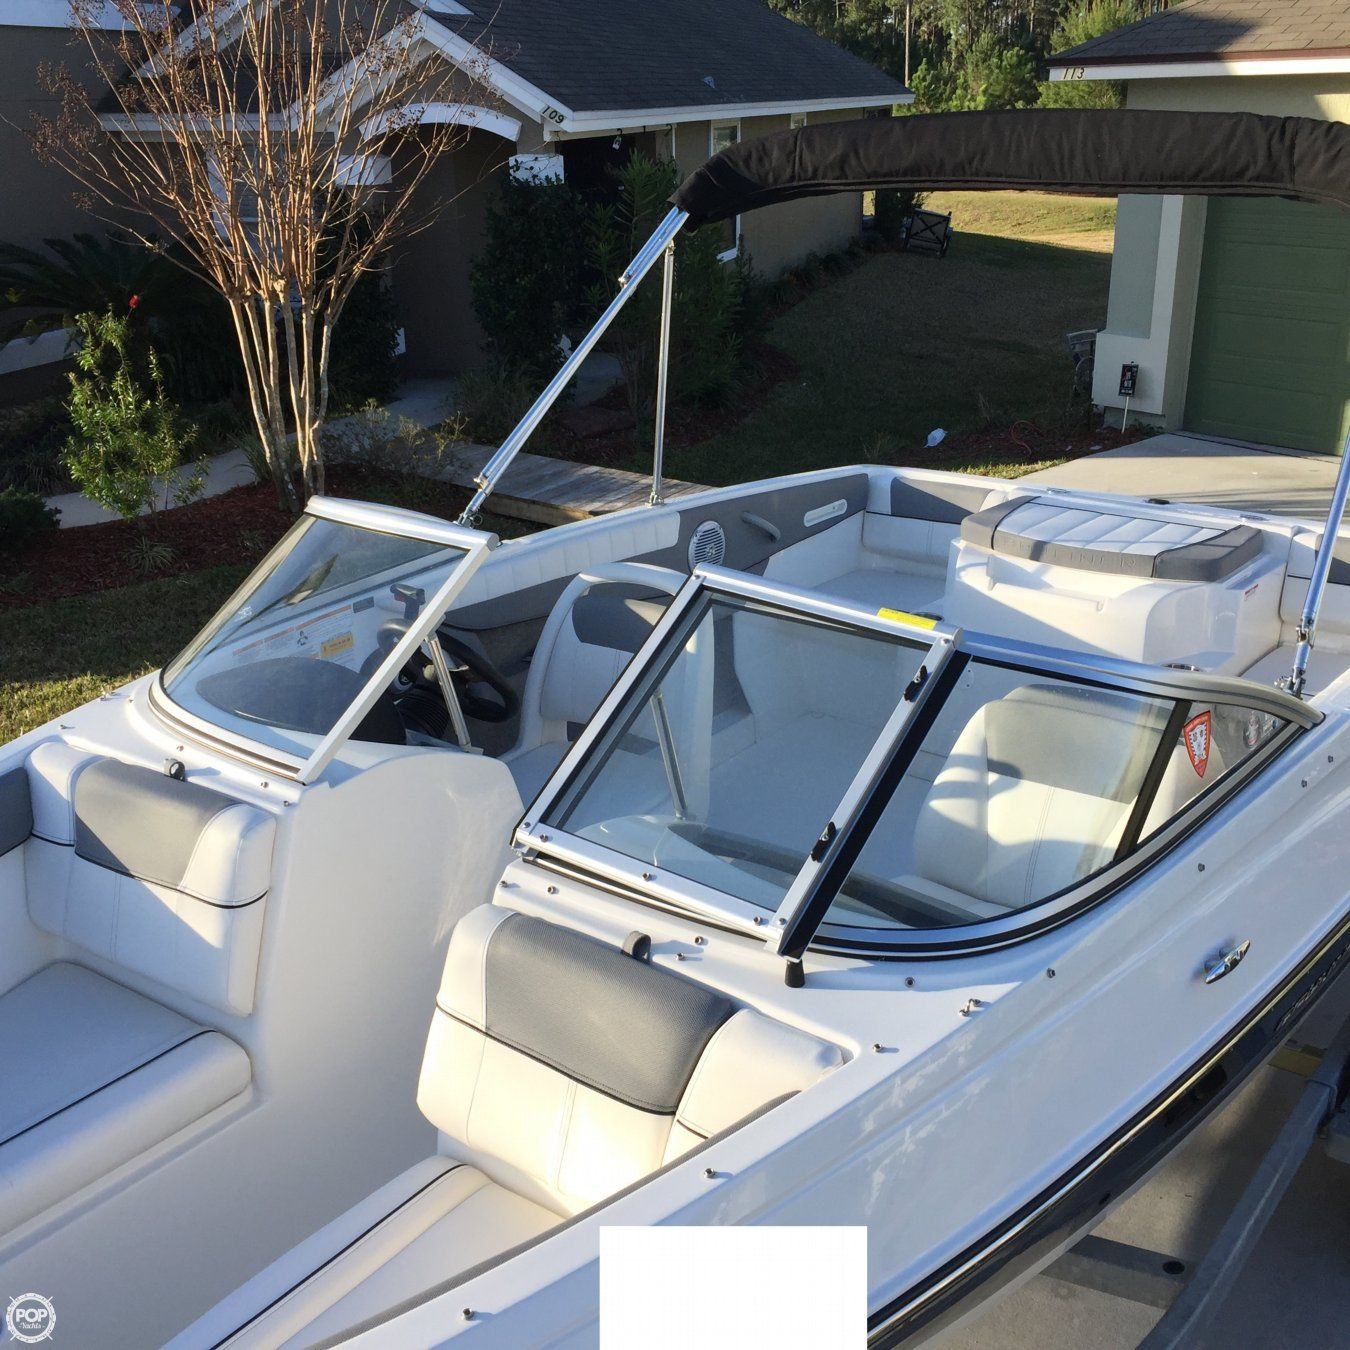 Great Condition...Garage Kept! 40 Hours! Motivated Seller